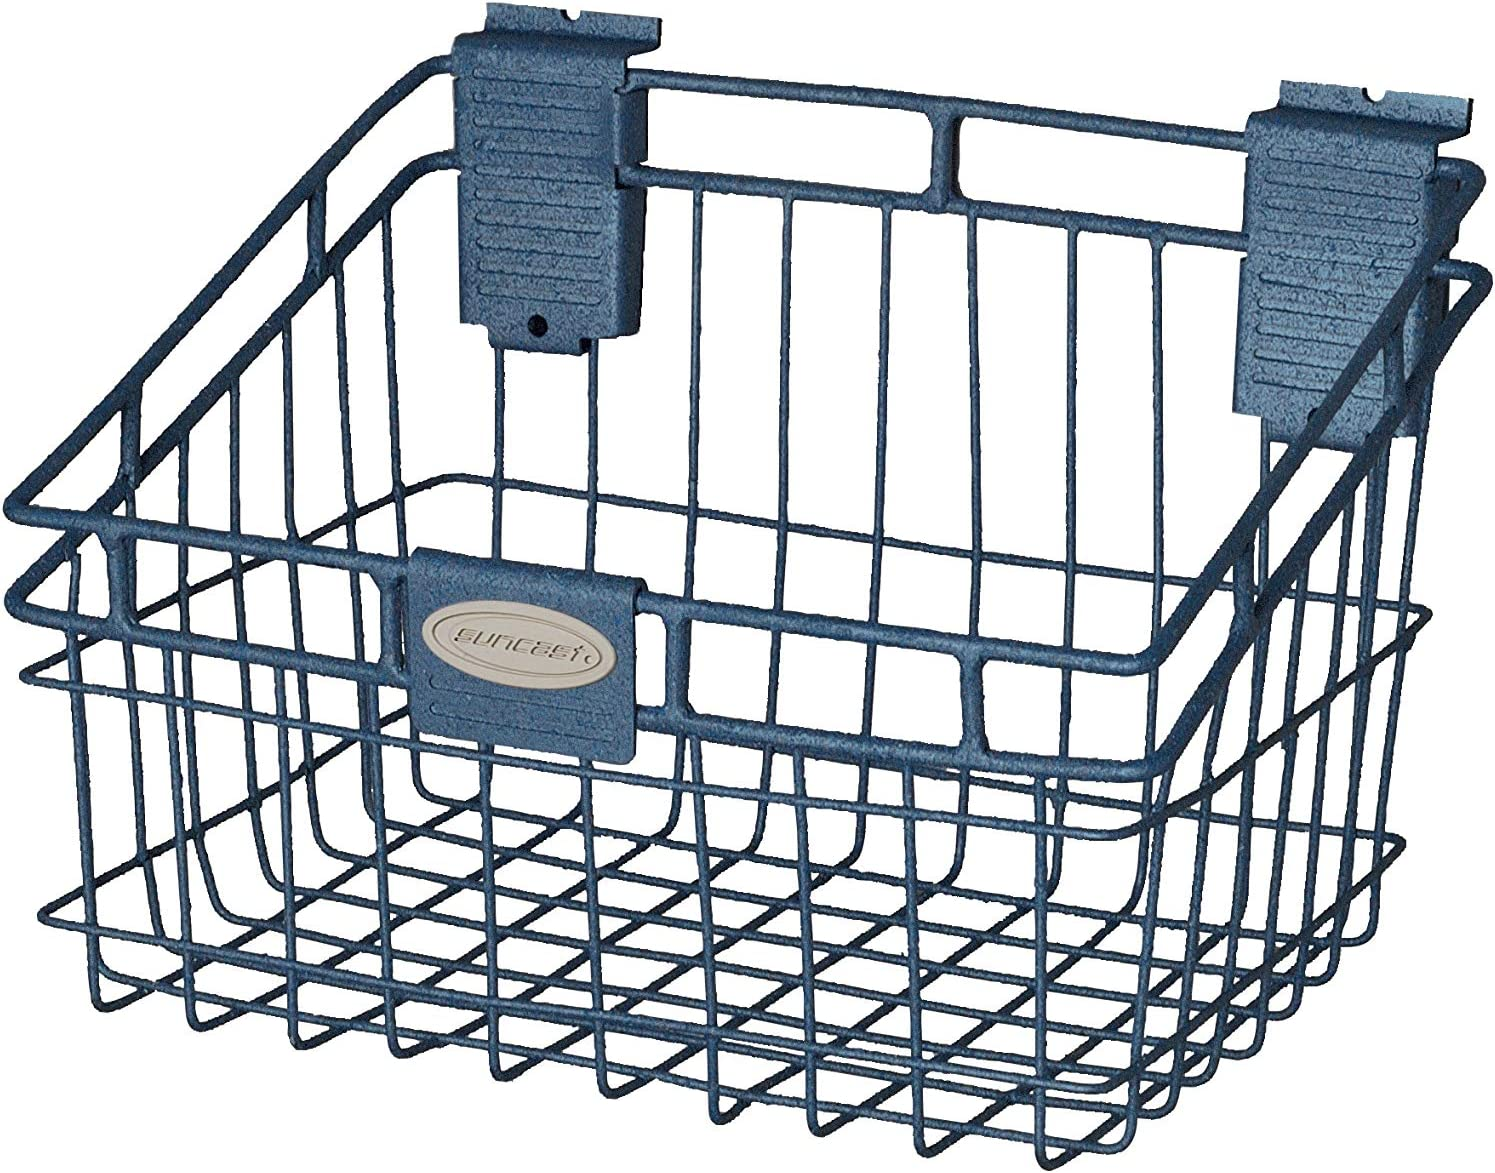 Suncast Blue Wire Basket Ideal for Hanging on Slat Wall, Door, Counter for Convenient and Accessible Storage-Holds up to 40 lbs, 8 x 12 x 8 5/16